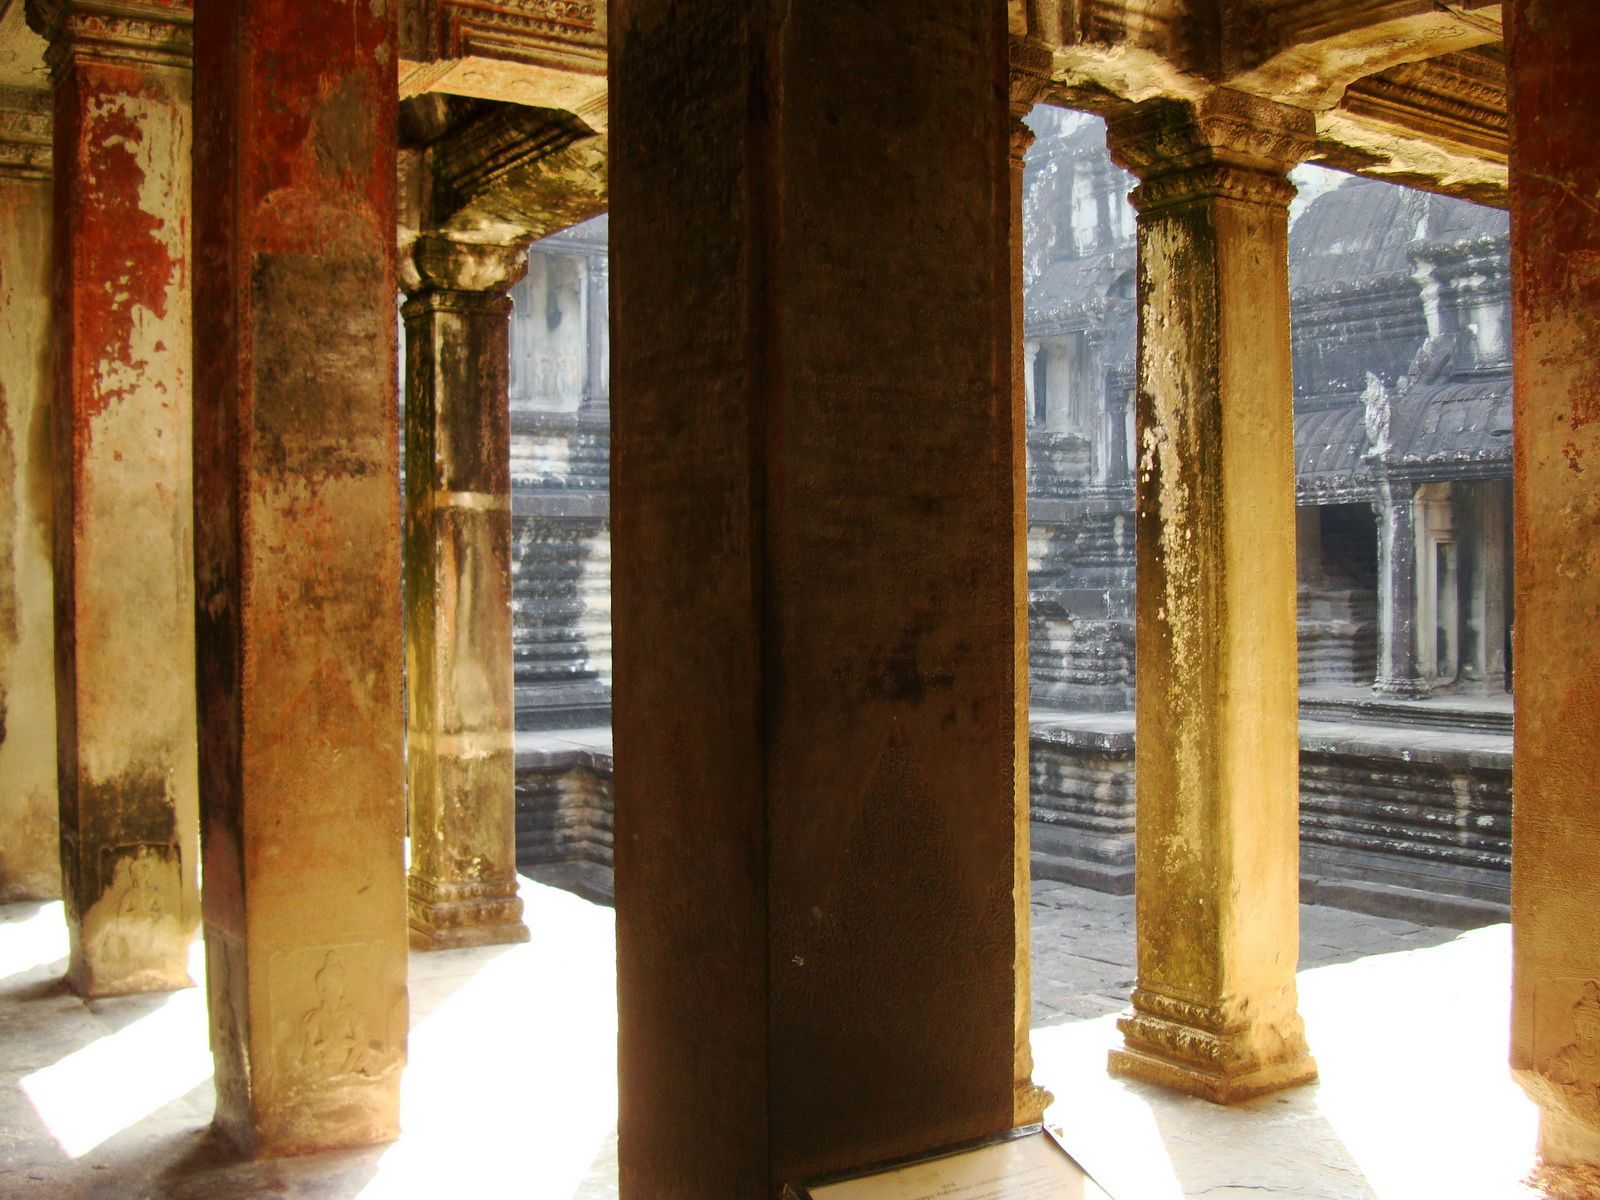 Angkor Wat inner sanctuary gallery columns and passageways 09